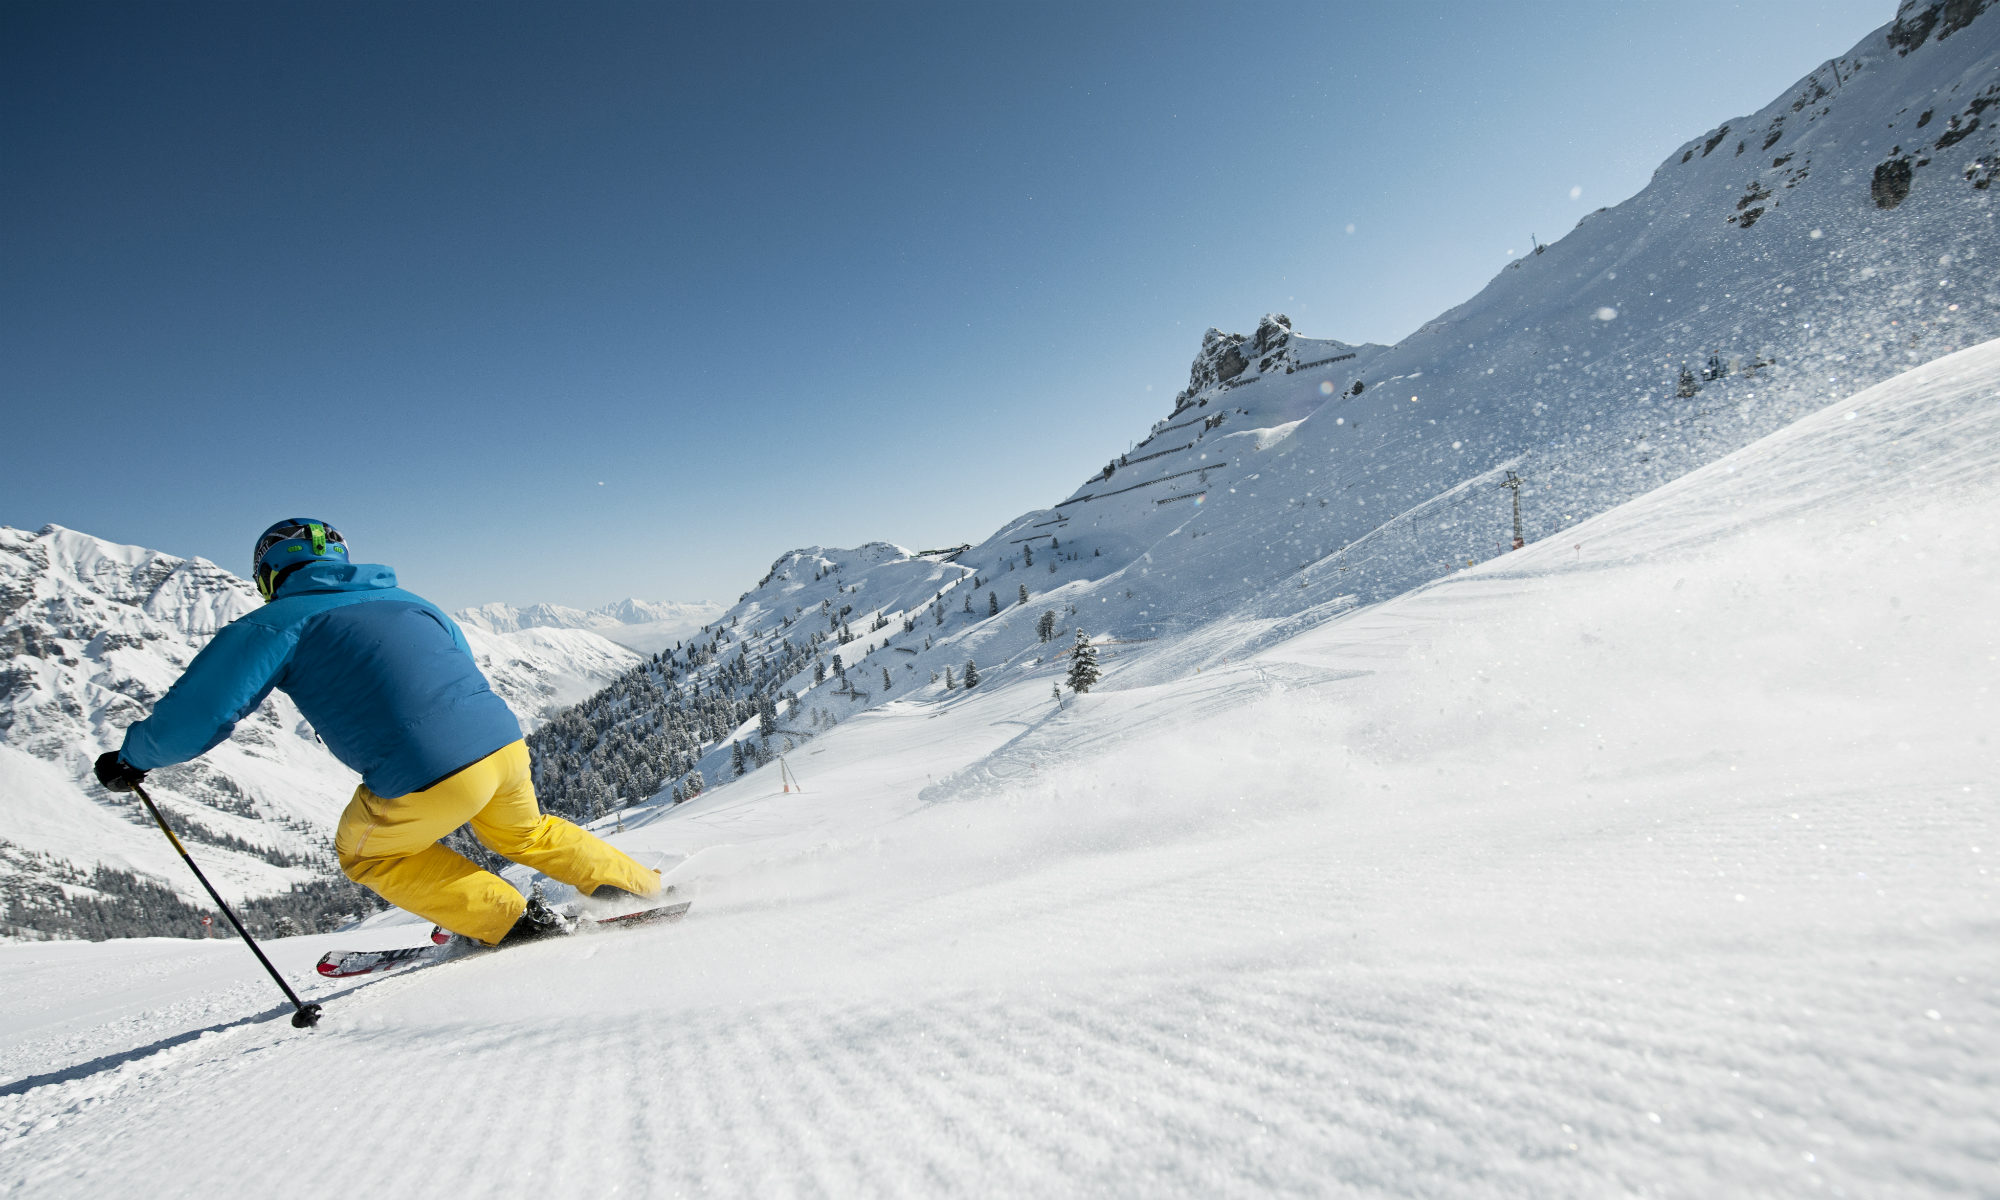 A skier sliding down a deserted slope.